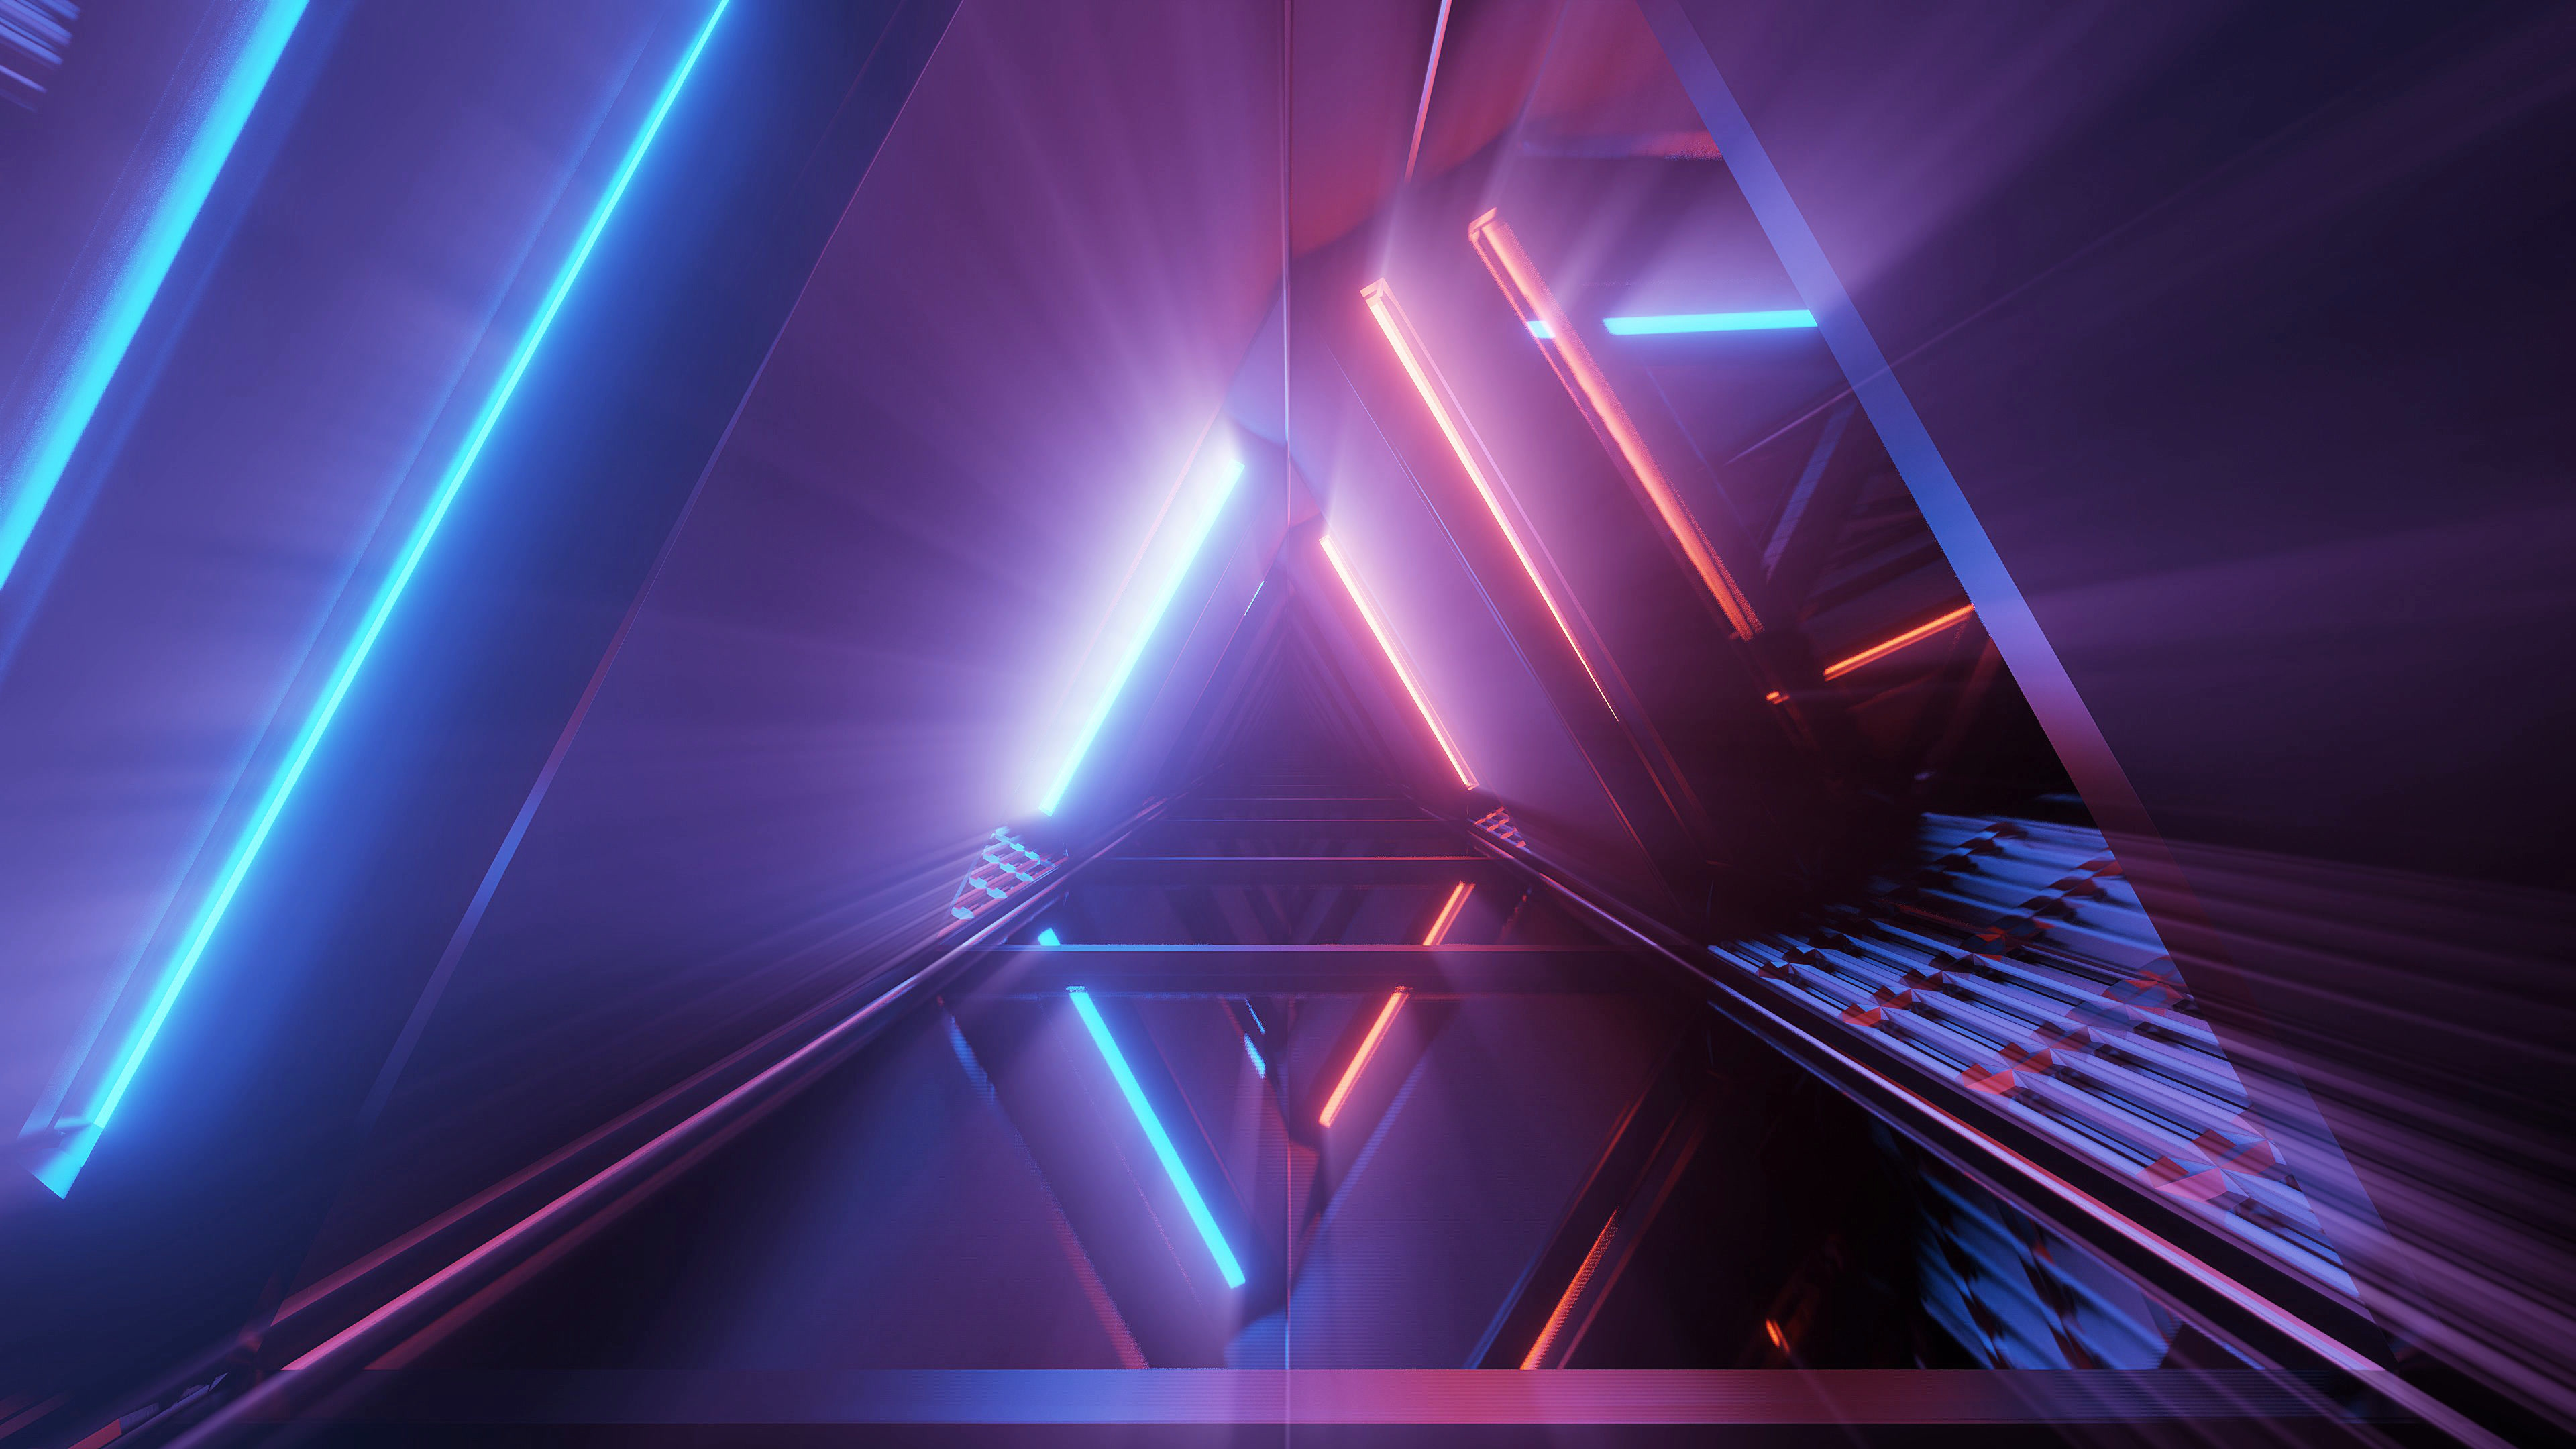 3d-rendering-futuristic-background-with-geometric-shapes-colorful-neon-lights